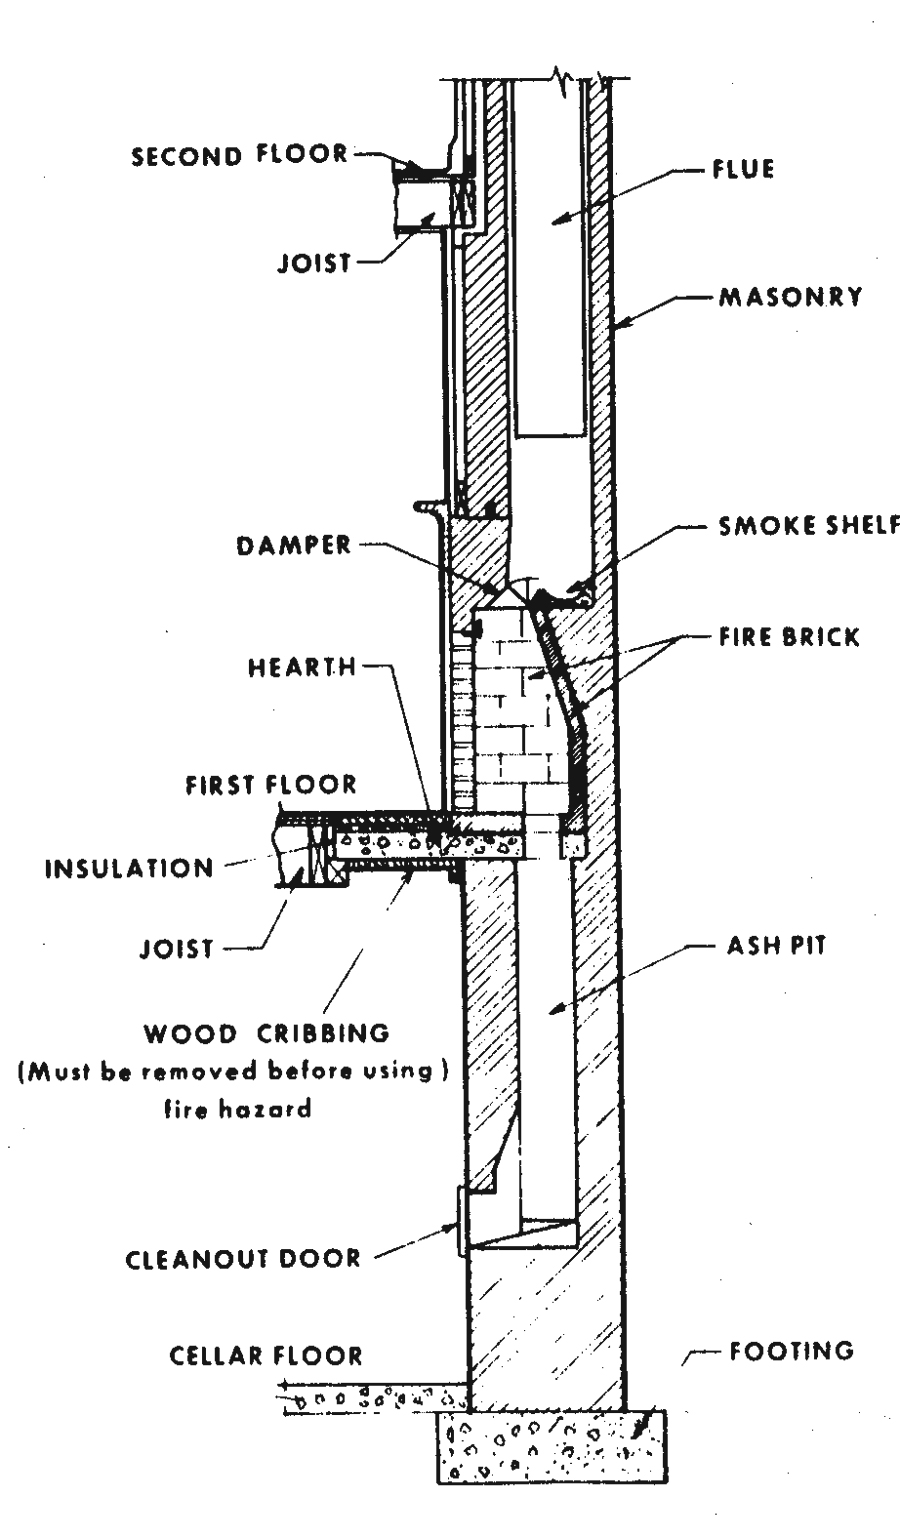 forced air furnace wiring diagrams